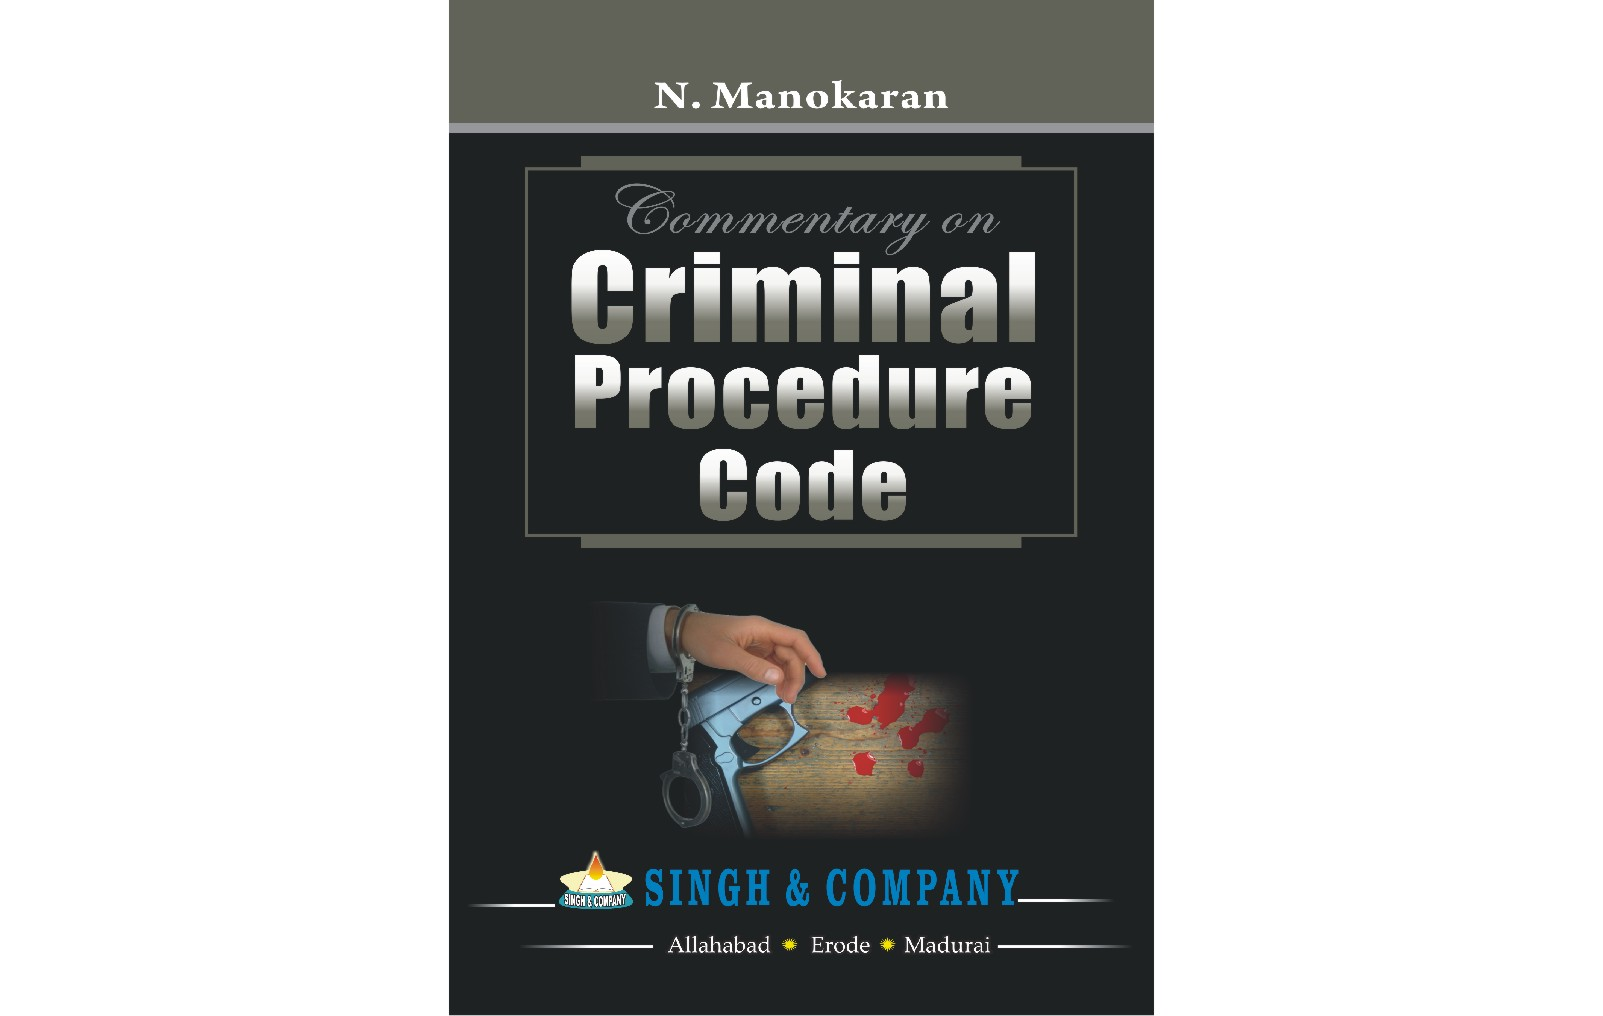 The Criminal Procedure Code